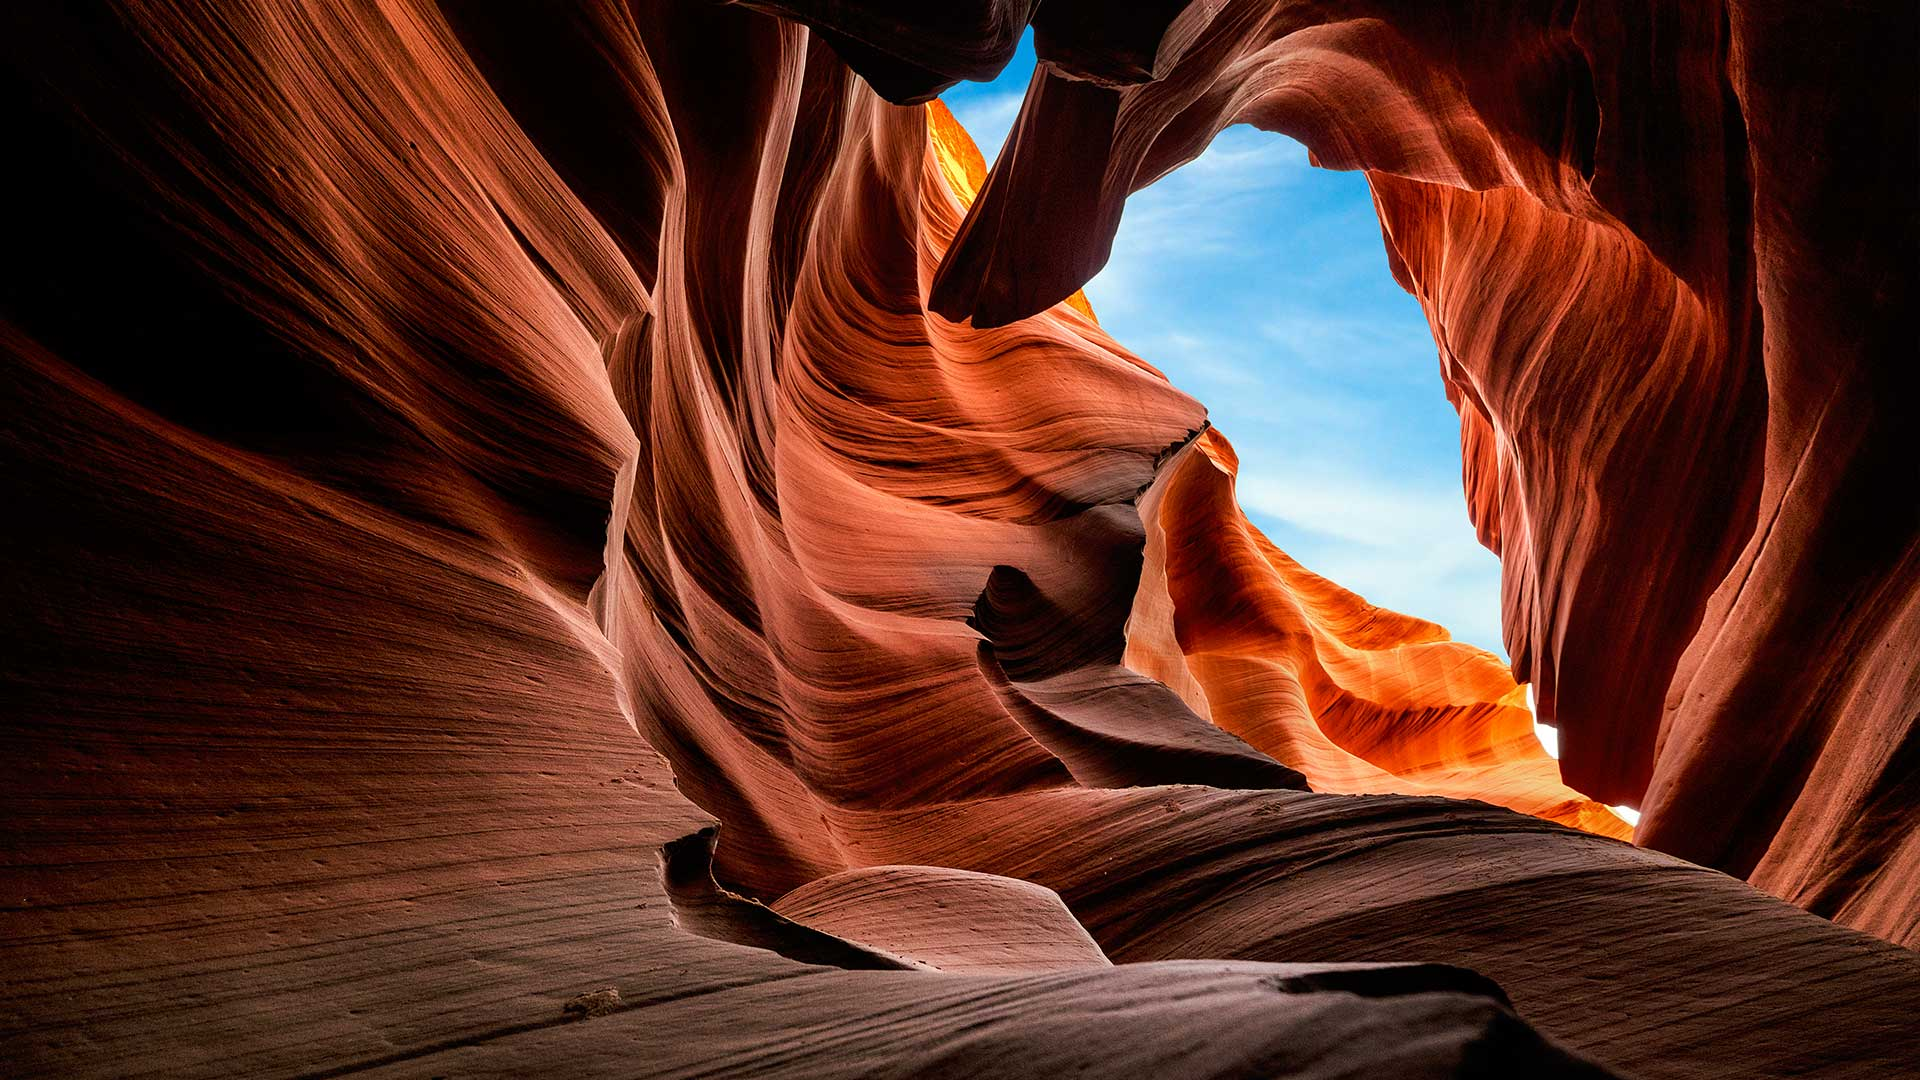 Cave of Enlightenment, Antelope Canyon, USA